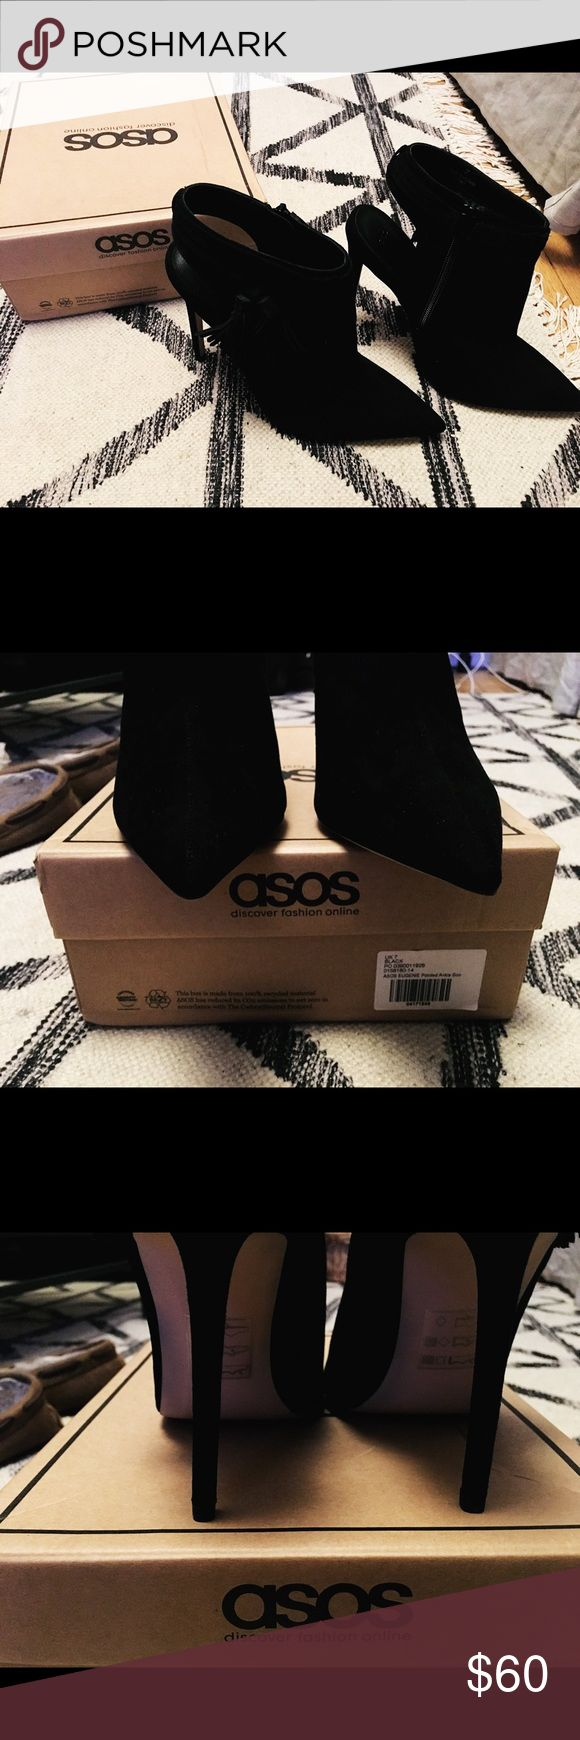 ASOS EUGENIE Black Pointed Ankle Boots. Zipper has tassel on the side of each shoe. Never worn. Original box included. ASOS Shoes Ankle Boots & Booties